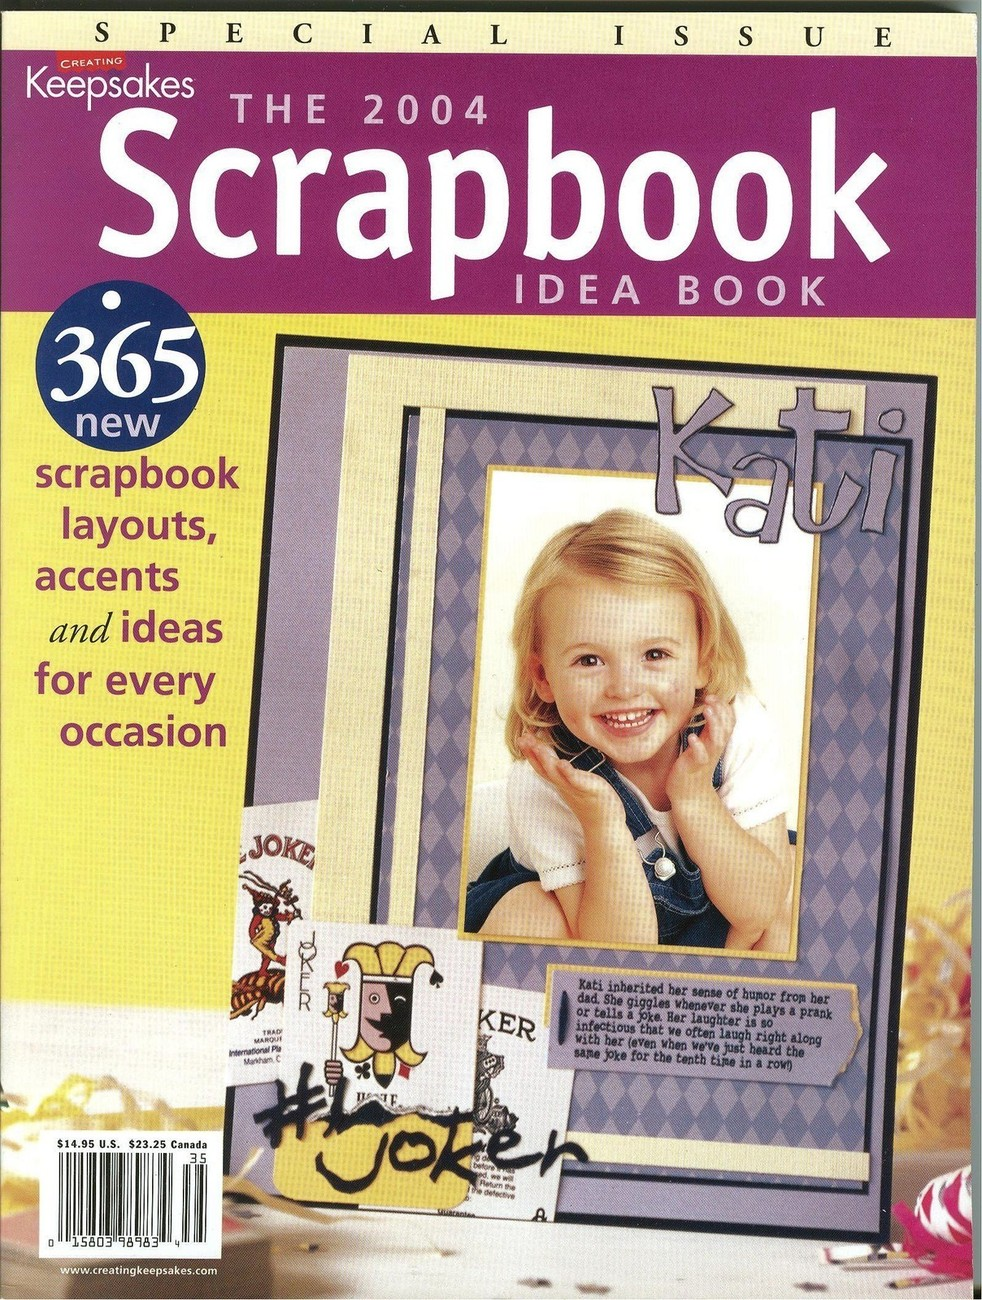 CREATING KEEPSAKES-The 2004 Scrapbook Idea Book;Great Craft Ideas;365 Layout Ide